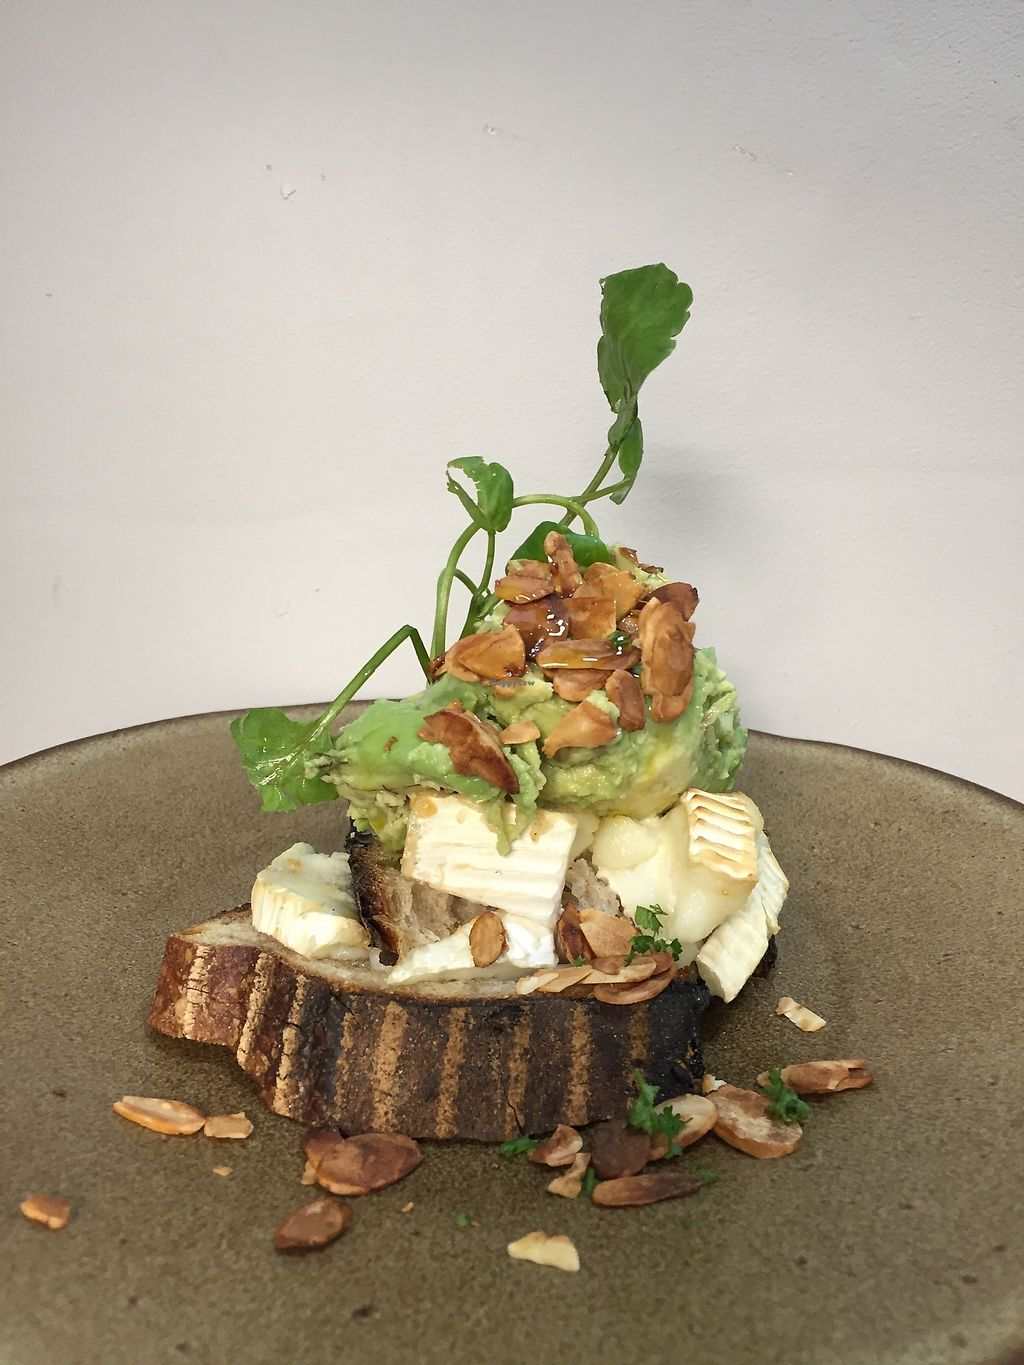 """Photo of Partisan  by <a href=""""/members/profile/lunaandpig"""">lunaandpig</a> <br/>Goats cheese and smashed avocado with smoked almonds and chilli oil <br/> November 16, 2017  - <a href='/contact/abuse/image/105222/326104'>Report</a>"""